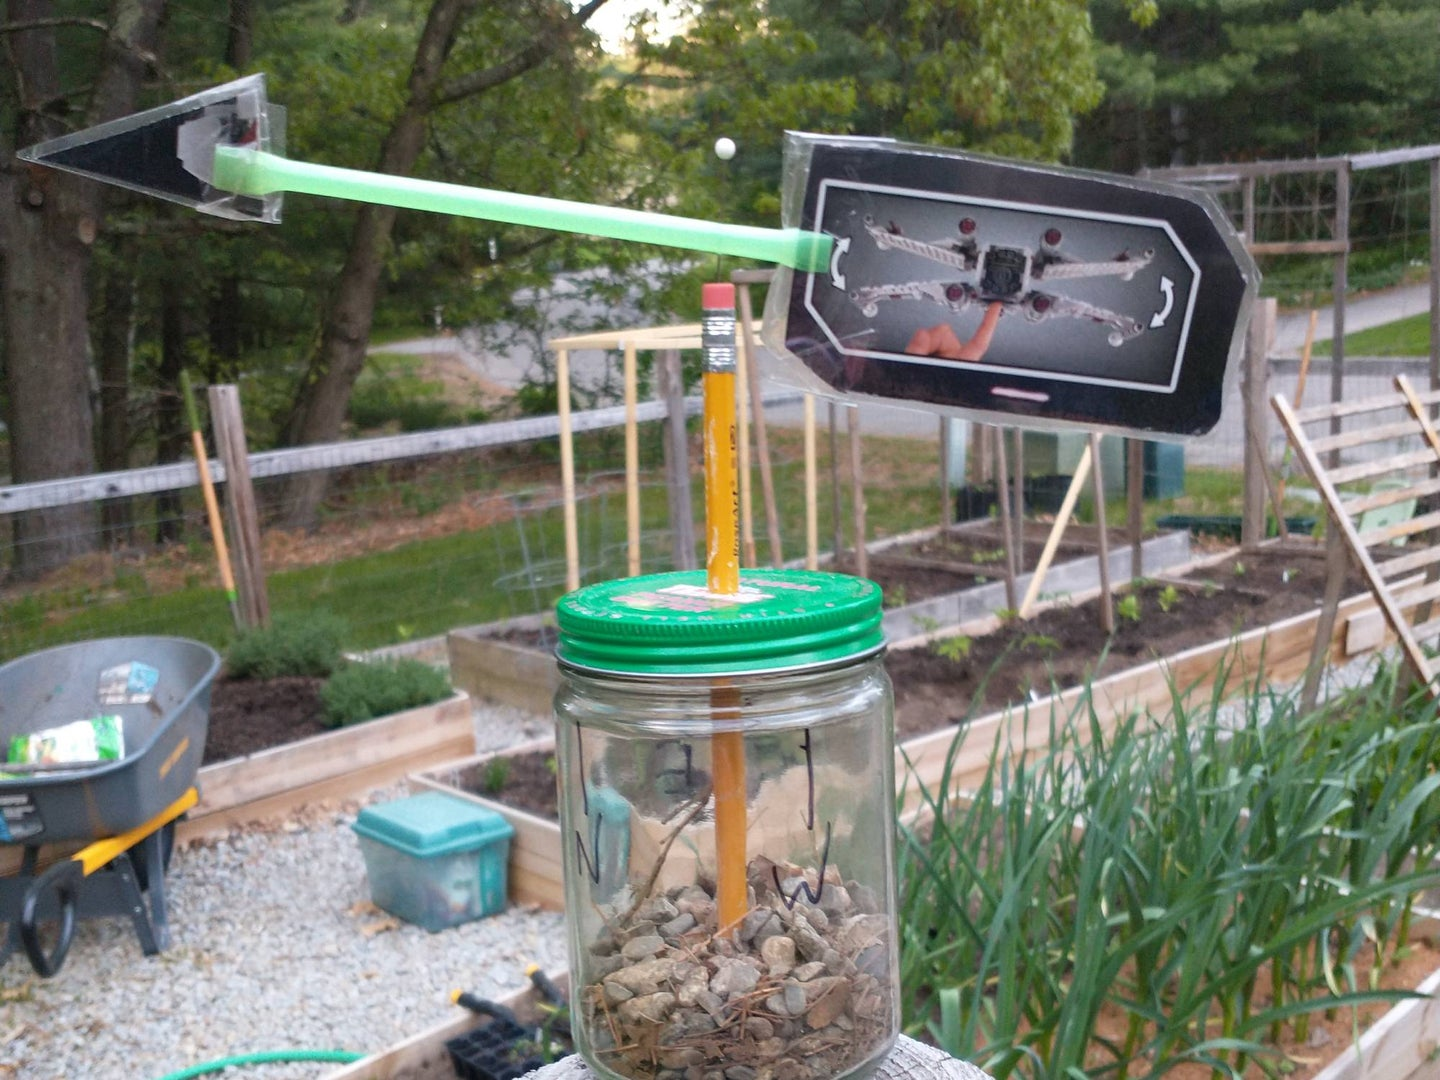 A DIY weather vane made out of recycled materials, set up outside.